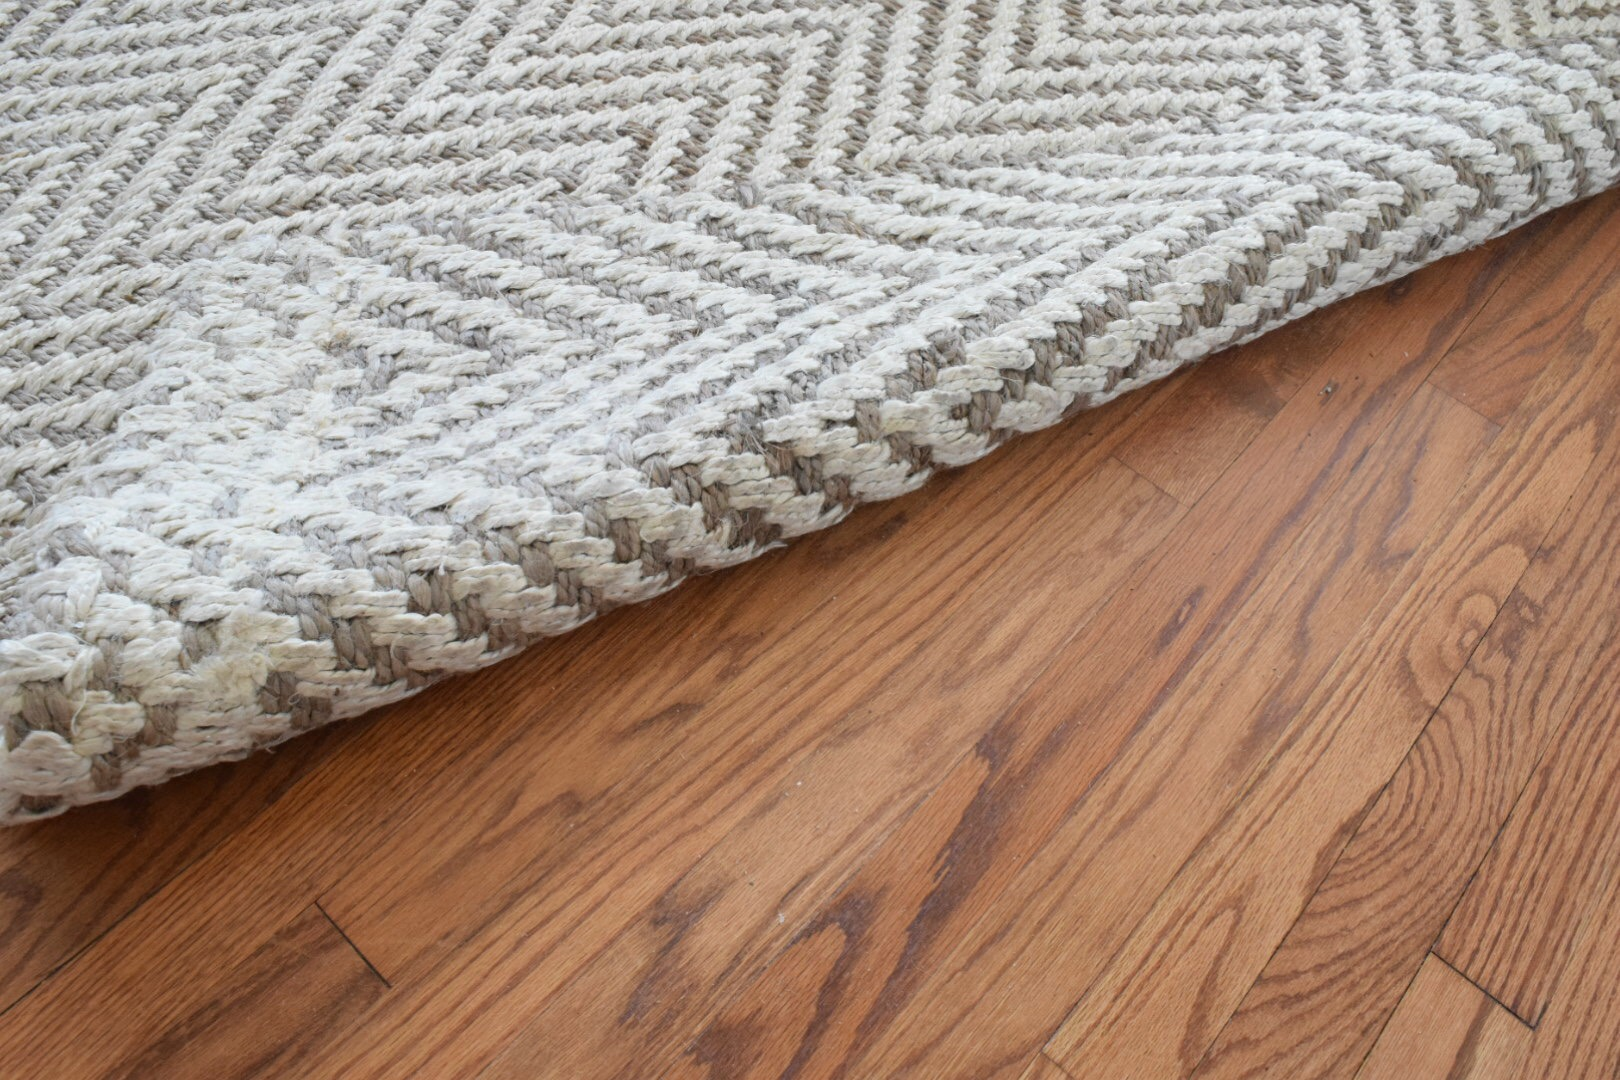 Jute Rug Review In Our Living Room  Would I Buy It Again?